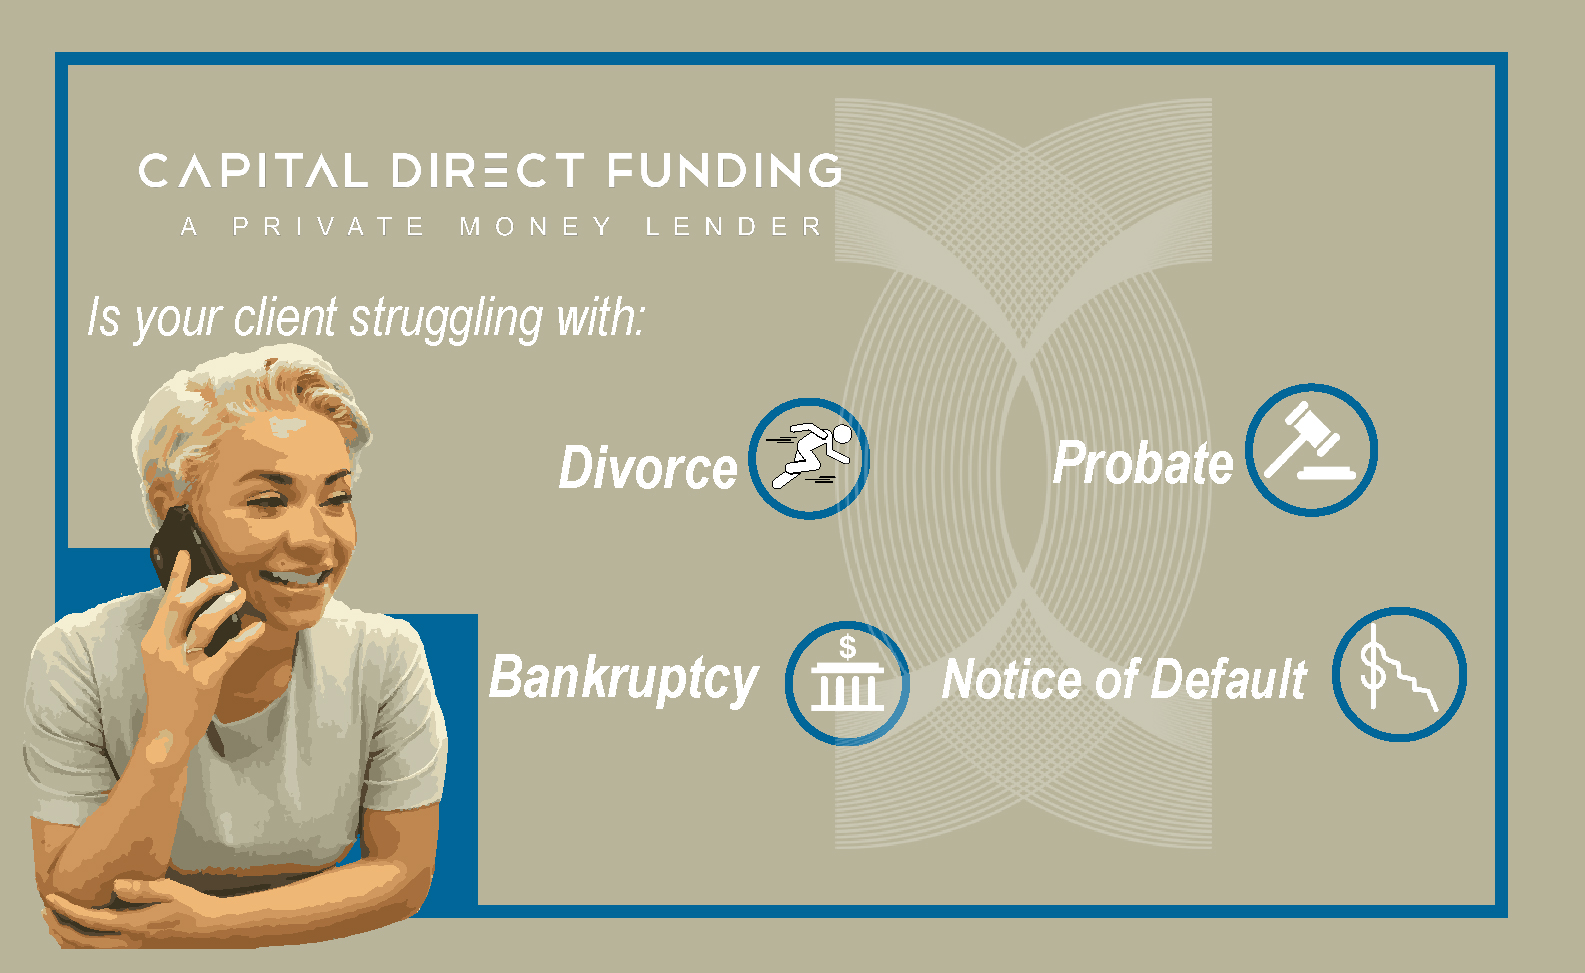 #CrisisSituations - Here at Capital Direct Funding, we handle unique transactions we are no stranger too.We excel in handling these types of transactions because we close so many.